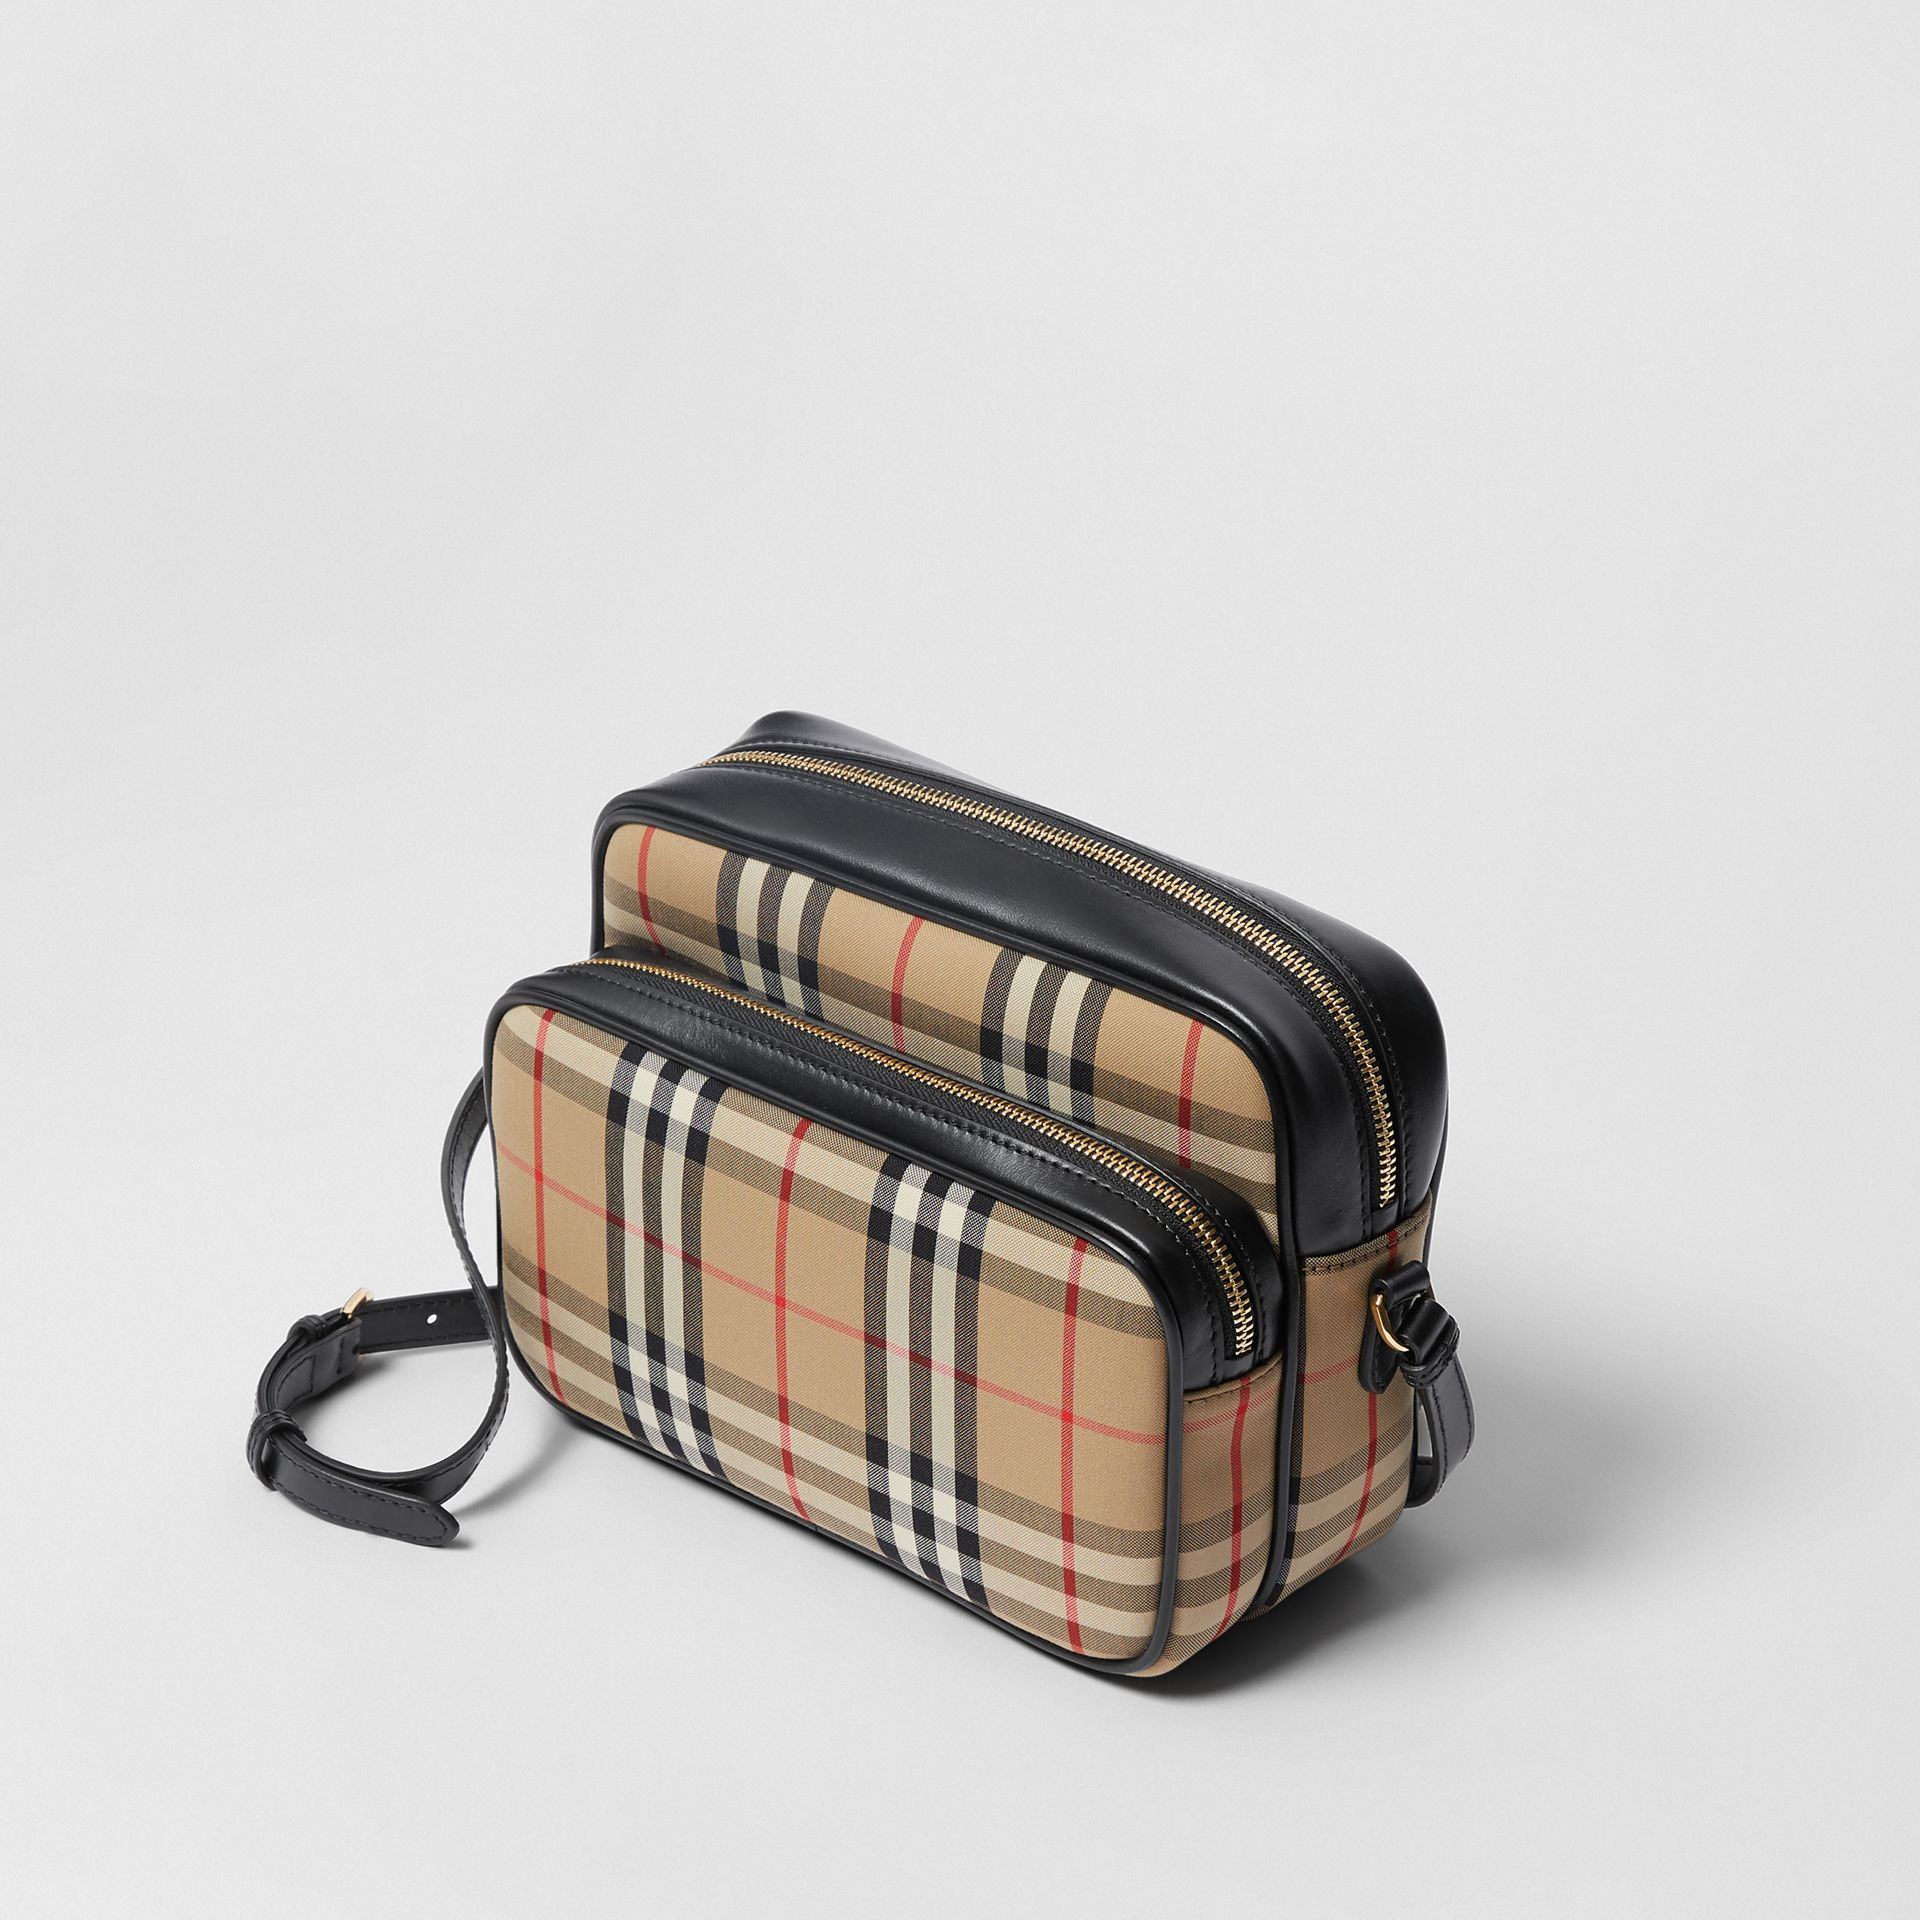 Medium Vintage Check and Leather Camera Bag in Archive Beige - Women | Burberry - gallery image 3